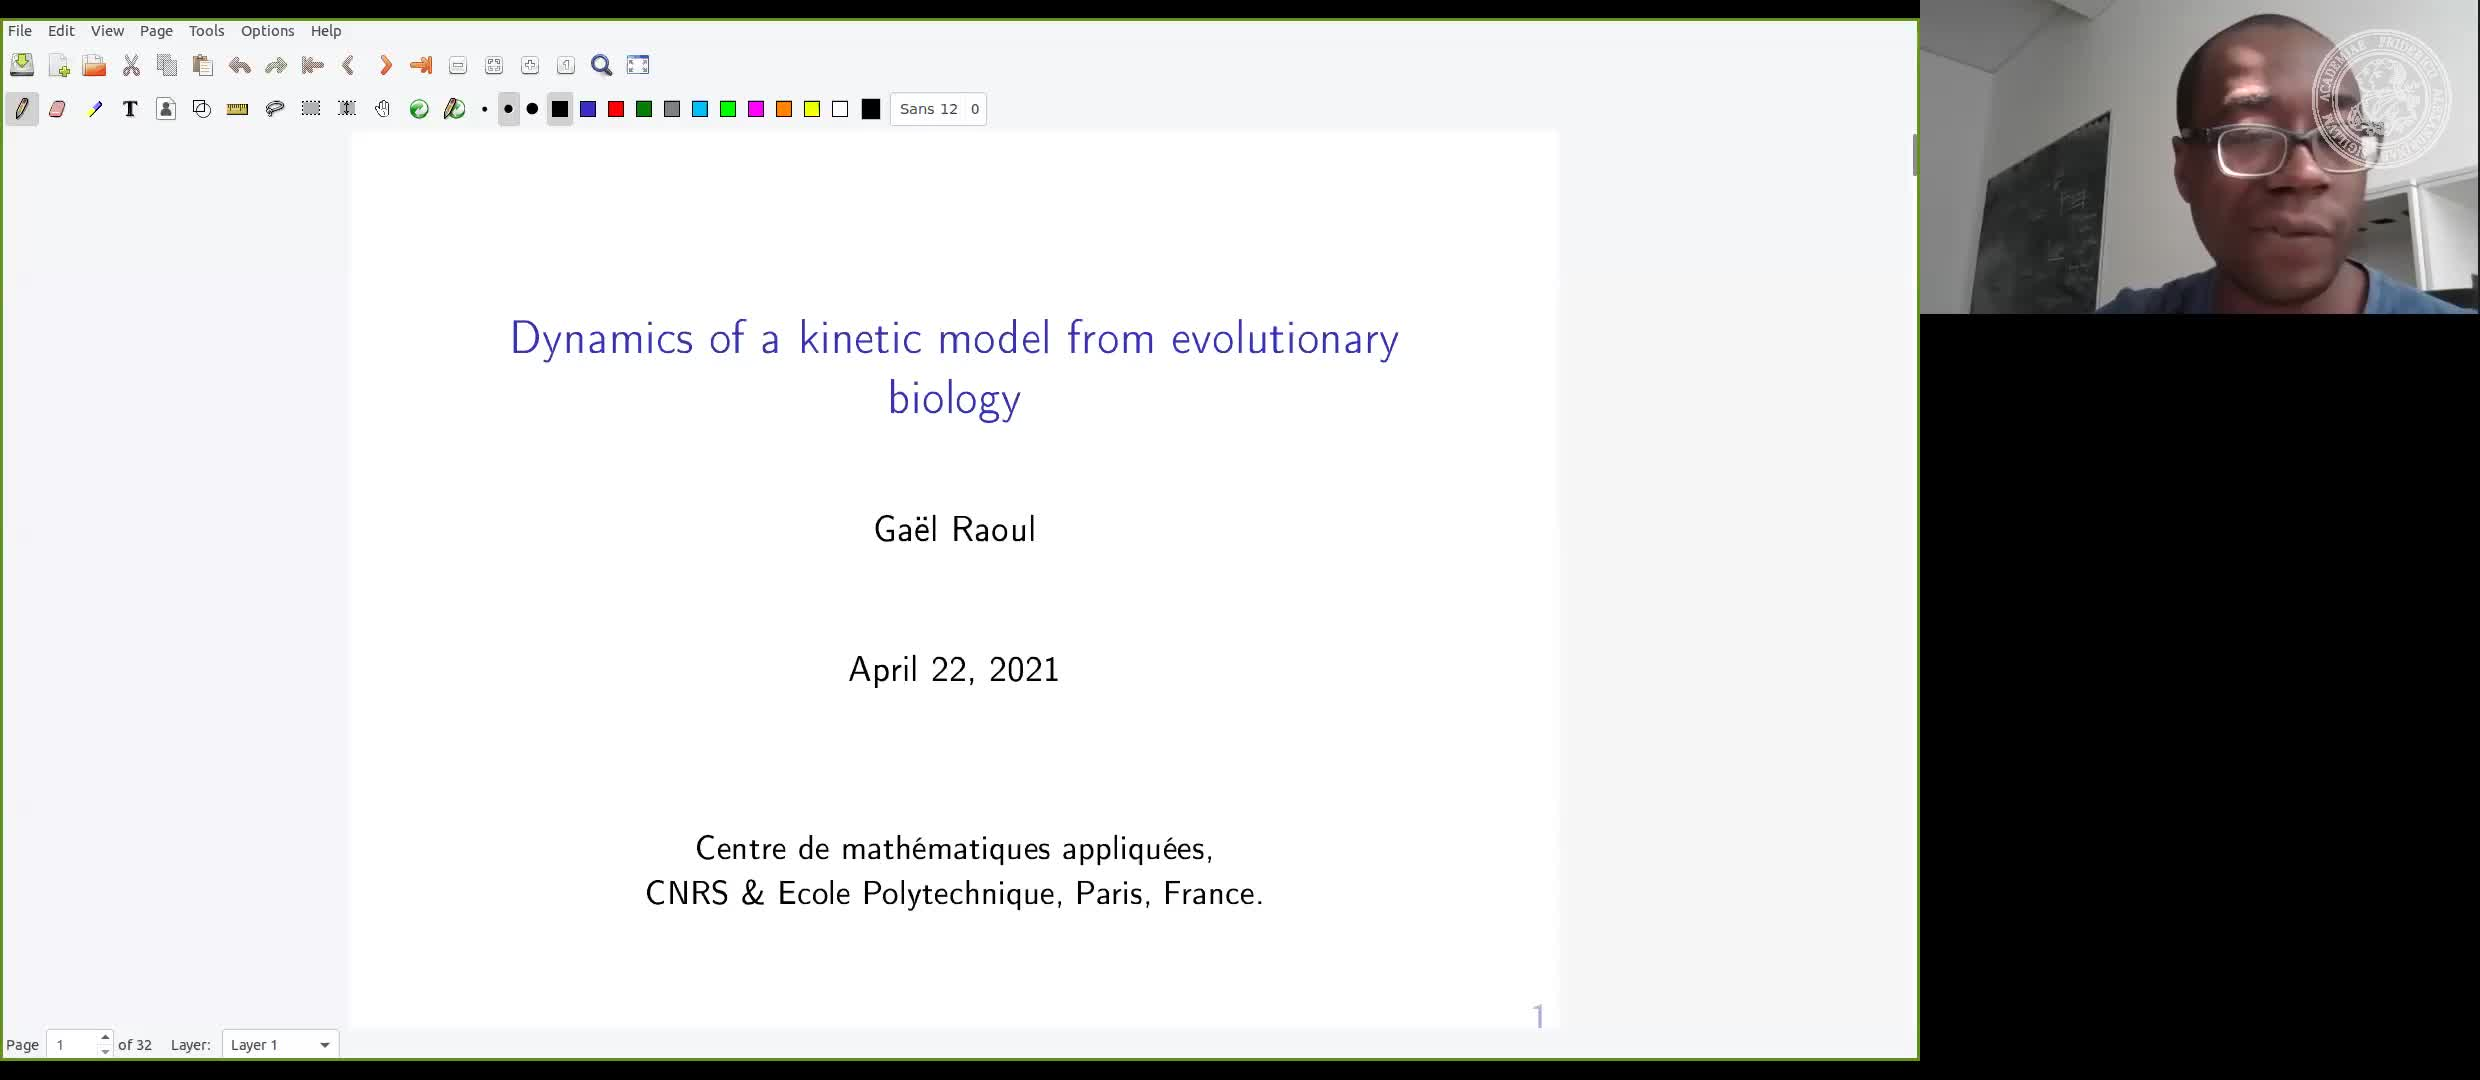 Dynamics of a kinetic model from evolutionary biology (G. Raoul, Ecole Polytechnique Paris, France) preview image